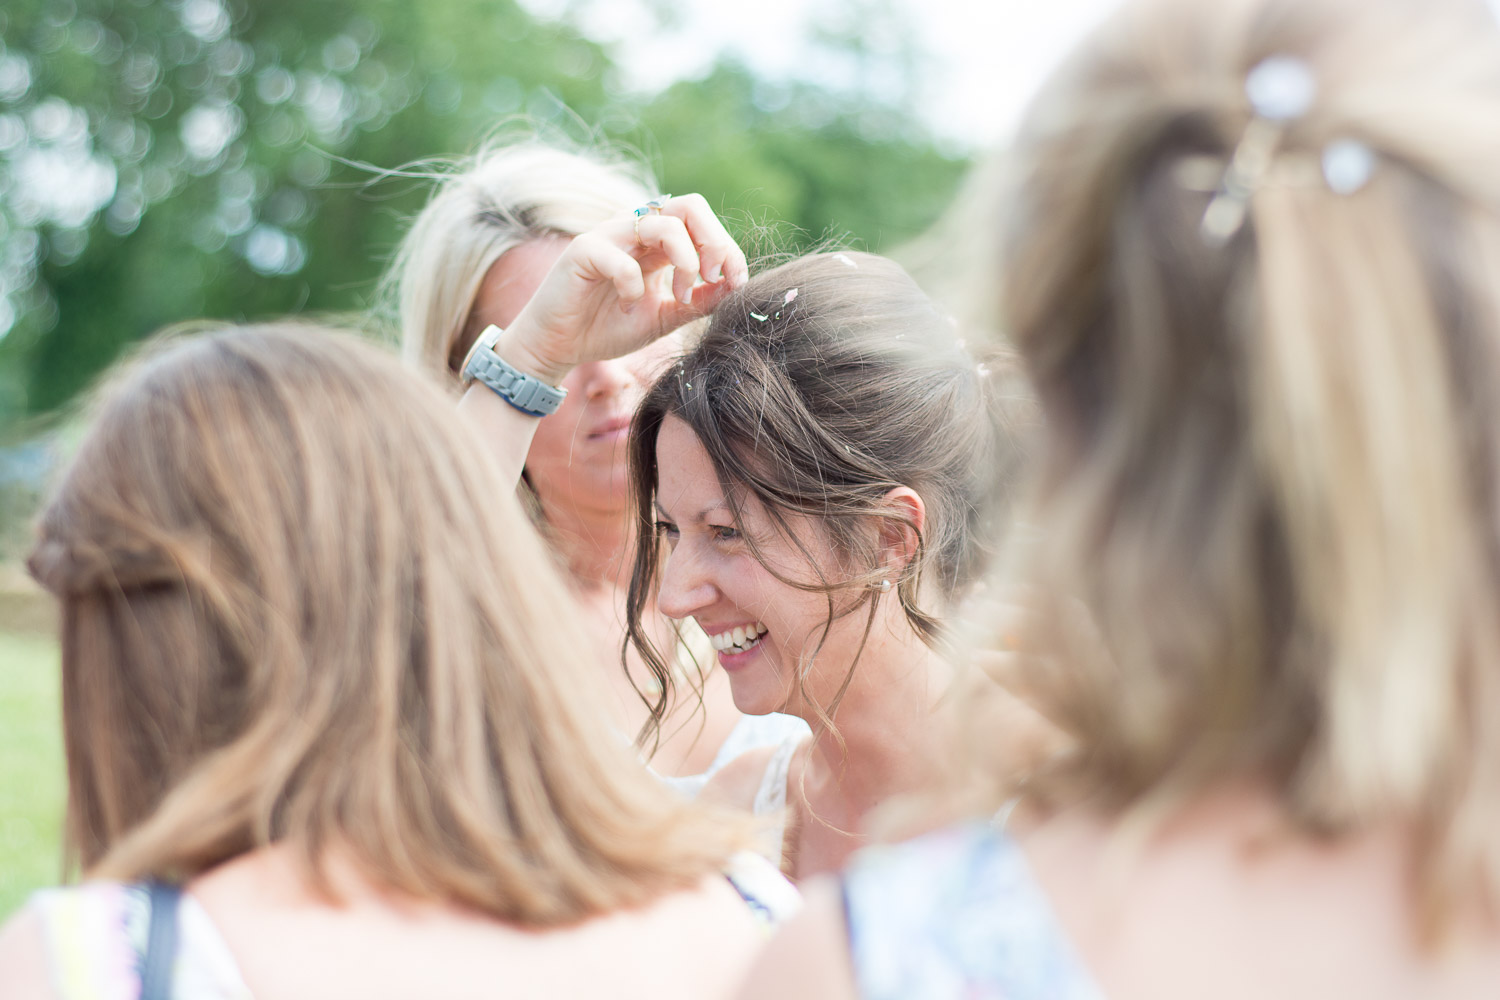 picking confetti out of her hair at wedding yurts wedding in leicestershire